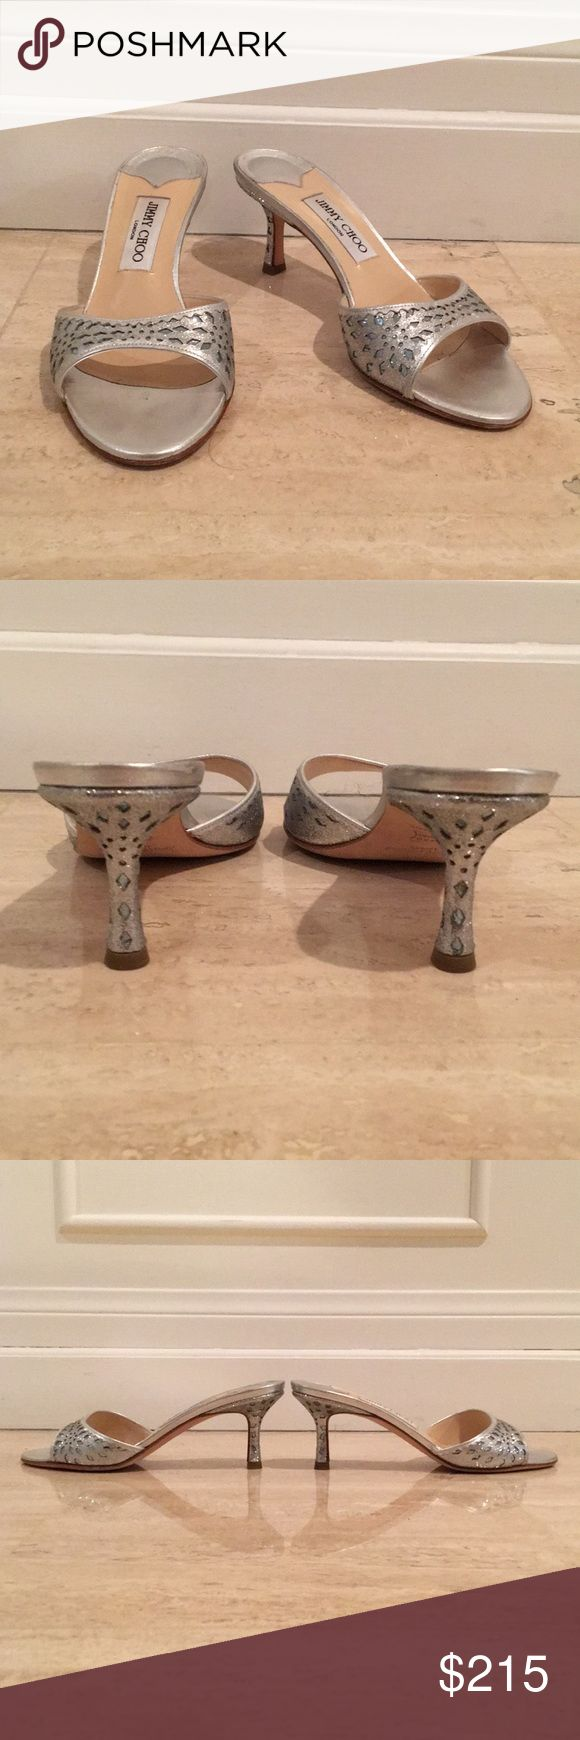 JIMMY CHOO Jeweled Silver Kitten Heels Barely worn JIMMY CHOO Jeweled Silver Kitten Heel Sandals. So much detail.   Does not come with box Jimmy Choo Shoes Sandals